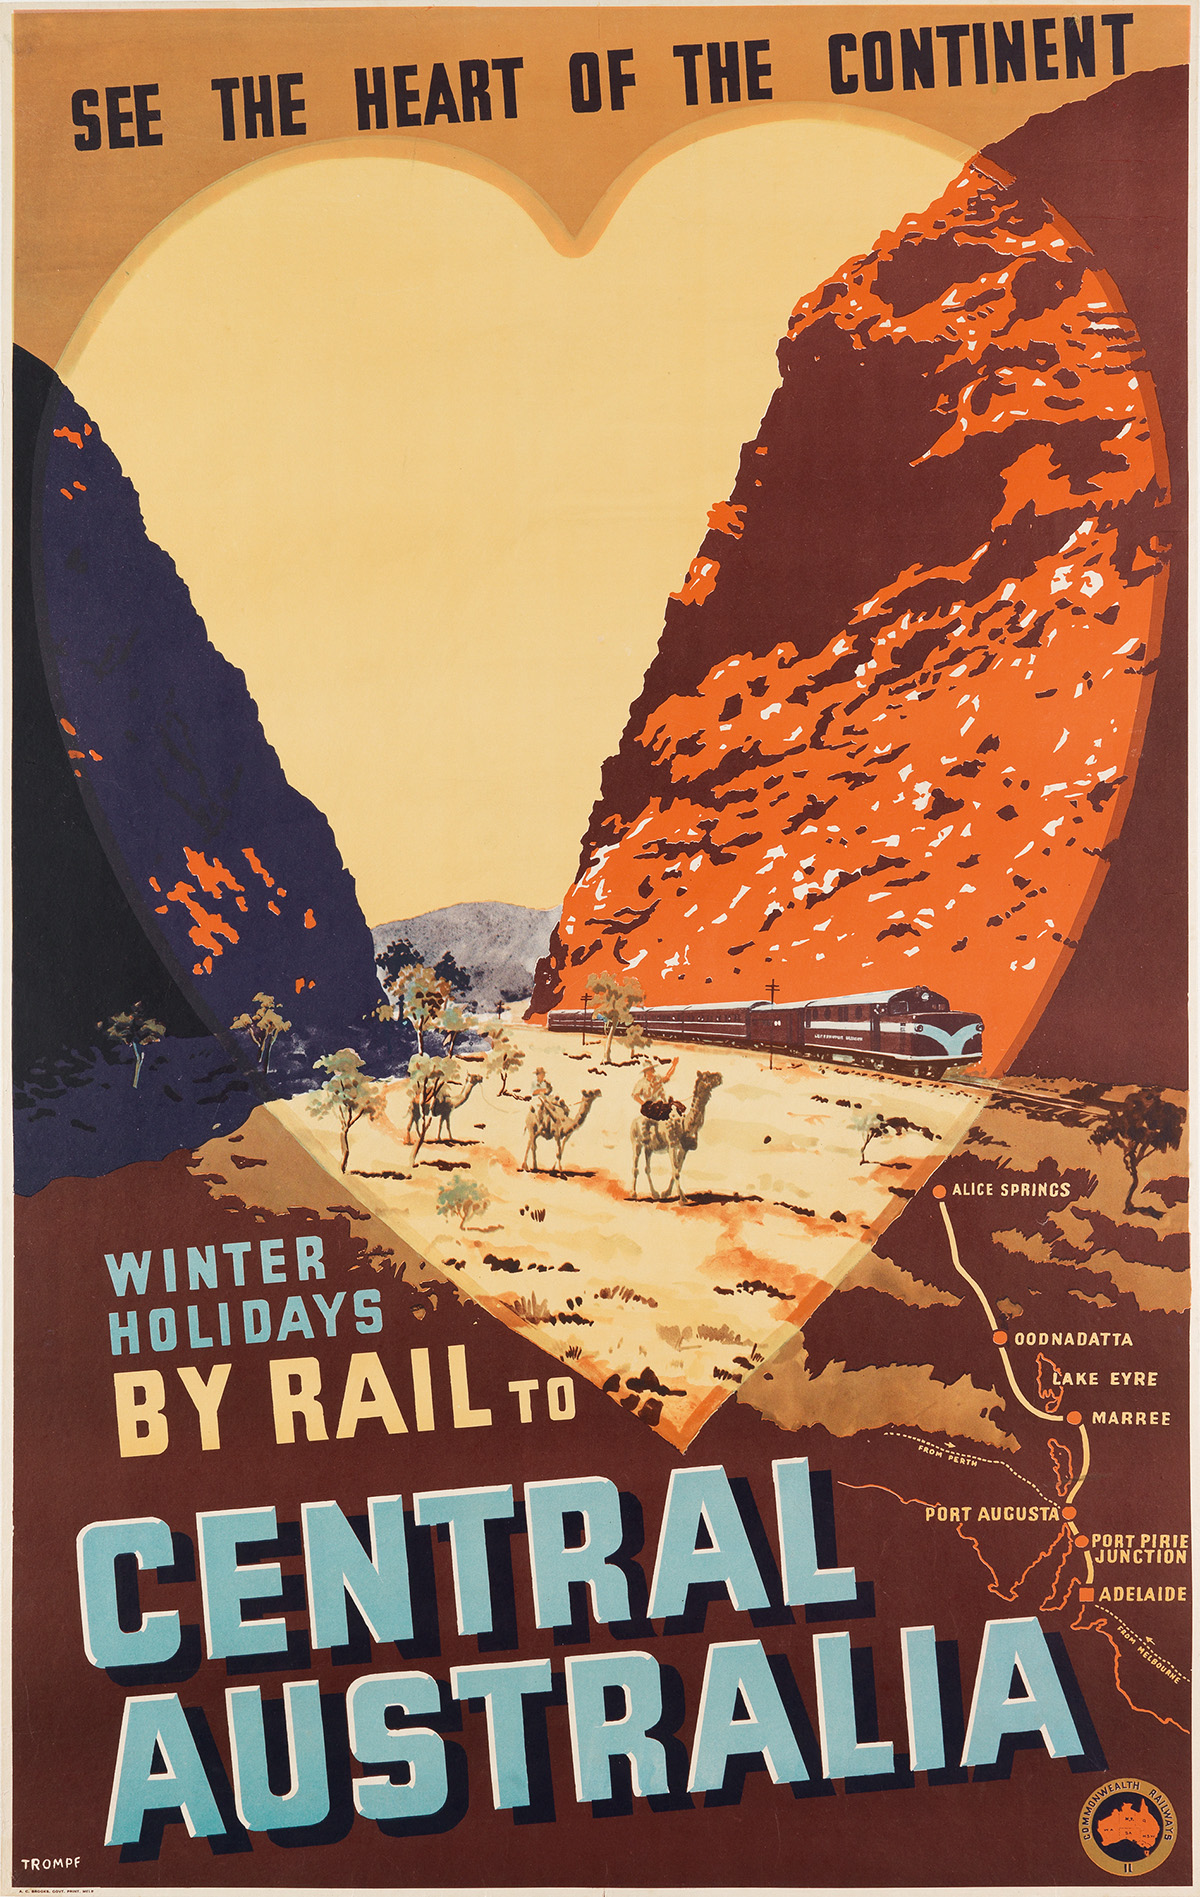 PERCIVAL-(PERCY)-ALBERT-TROMPF-(1902-1964)-WINTER-HOLIDAYS-BY-RAIL-TO-CENTRAL-AUSTRALIA-Circa-1950s-39x25-inches-100x63-cm-AC-Br